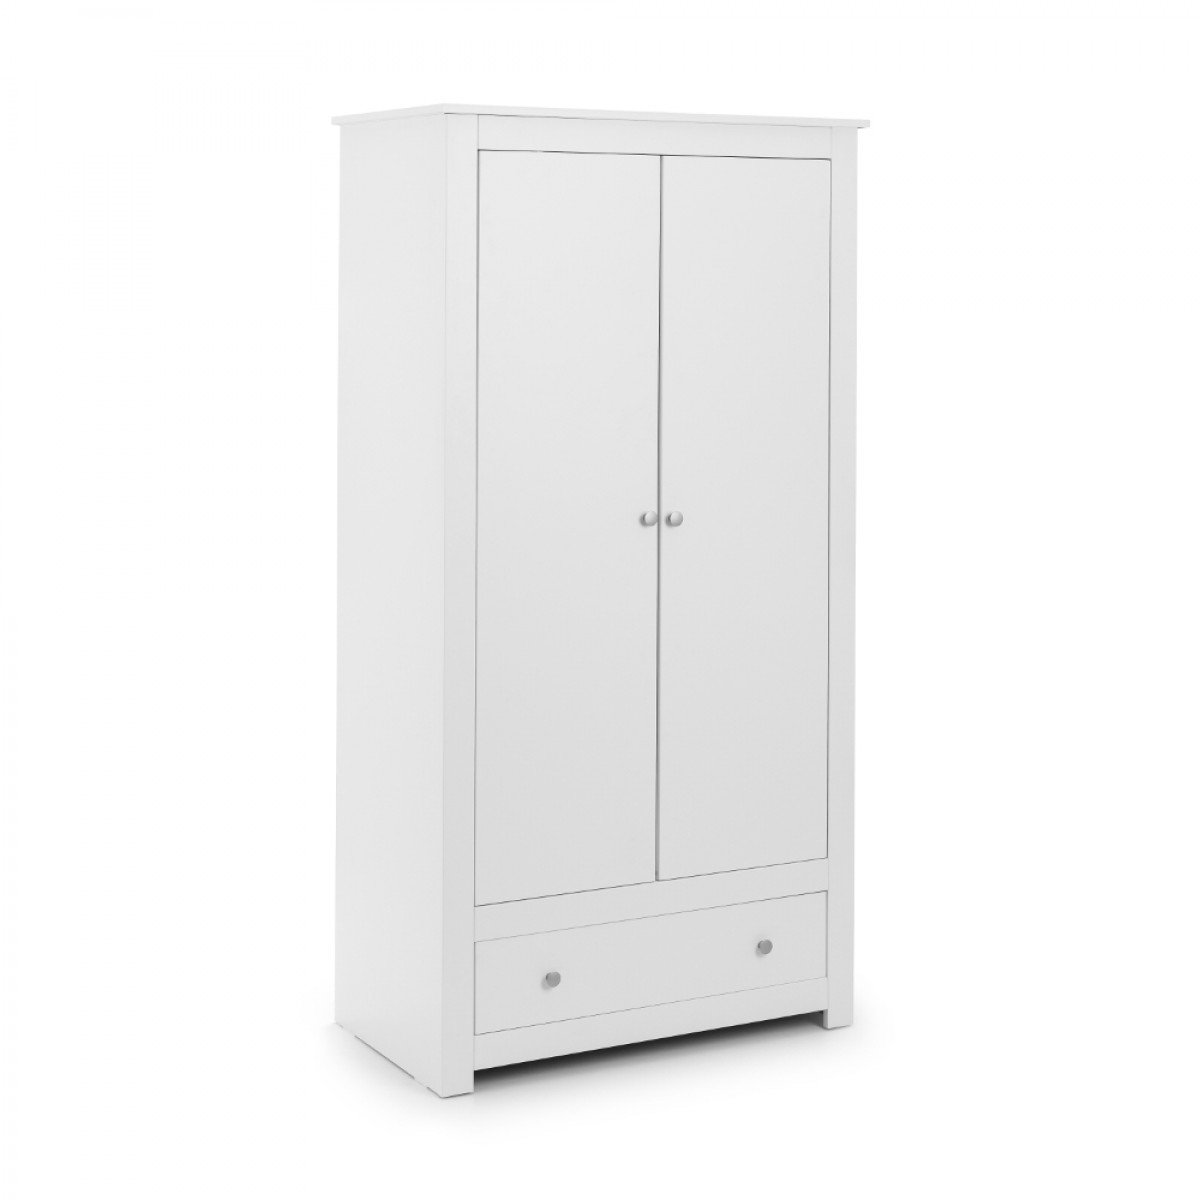 Radley White 2 Door Combination Wardrobe